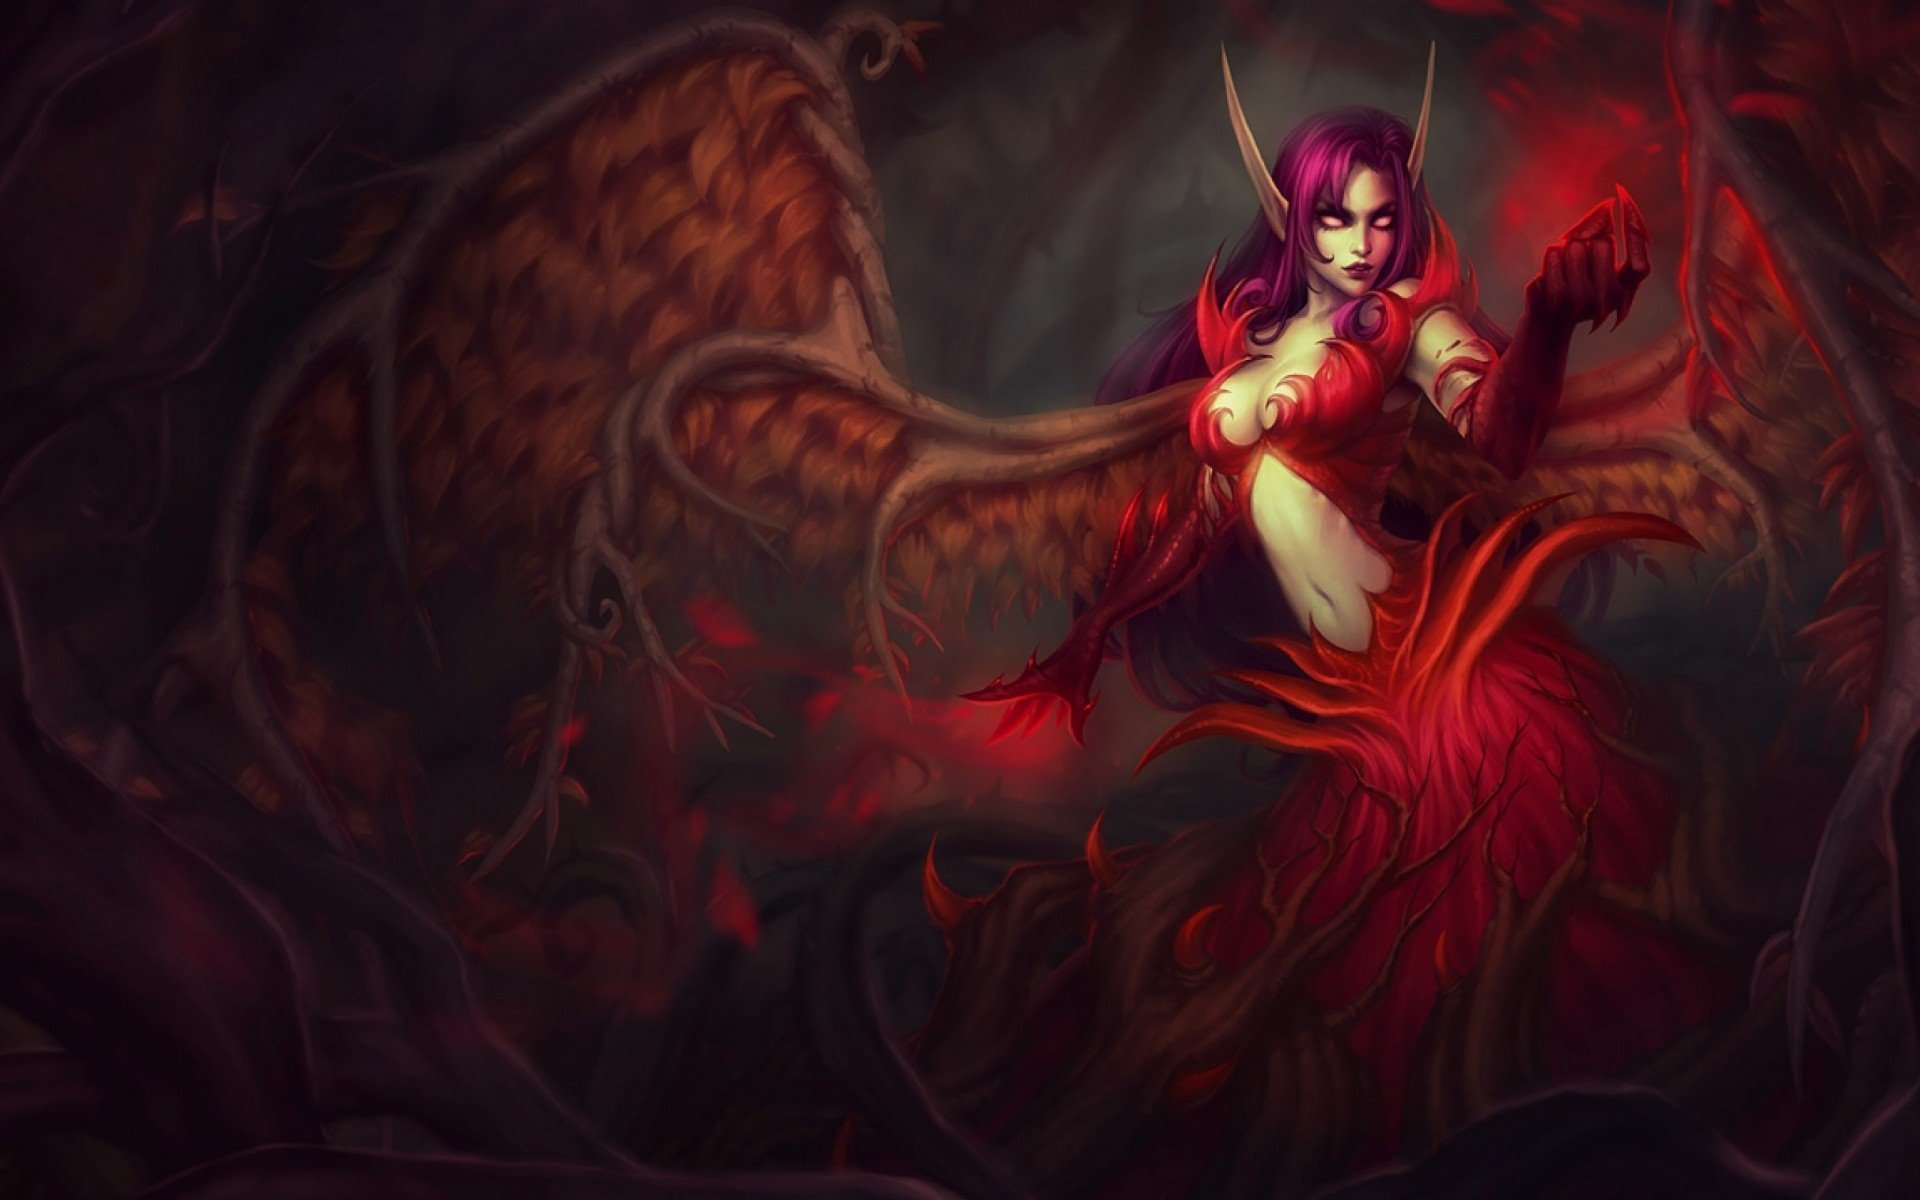 Video Game - League Of Legends  Fantasy Angel Demon Morgana (League Of Legends) Red Wings Horns Wallpaper